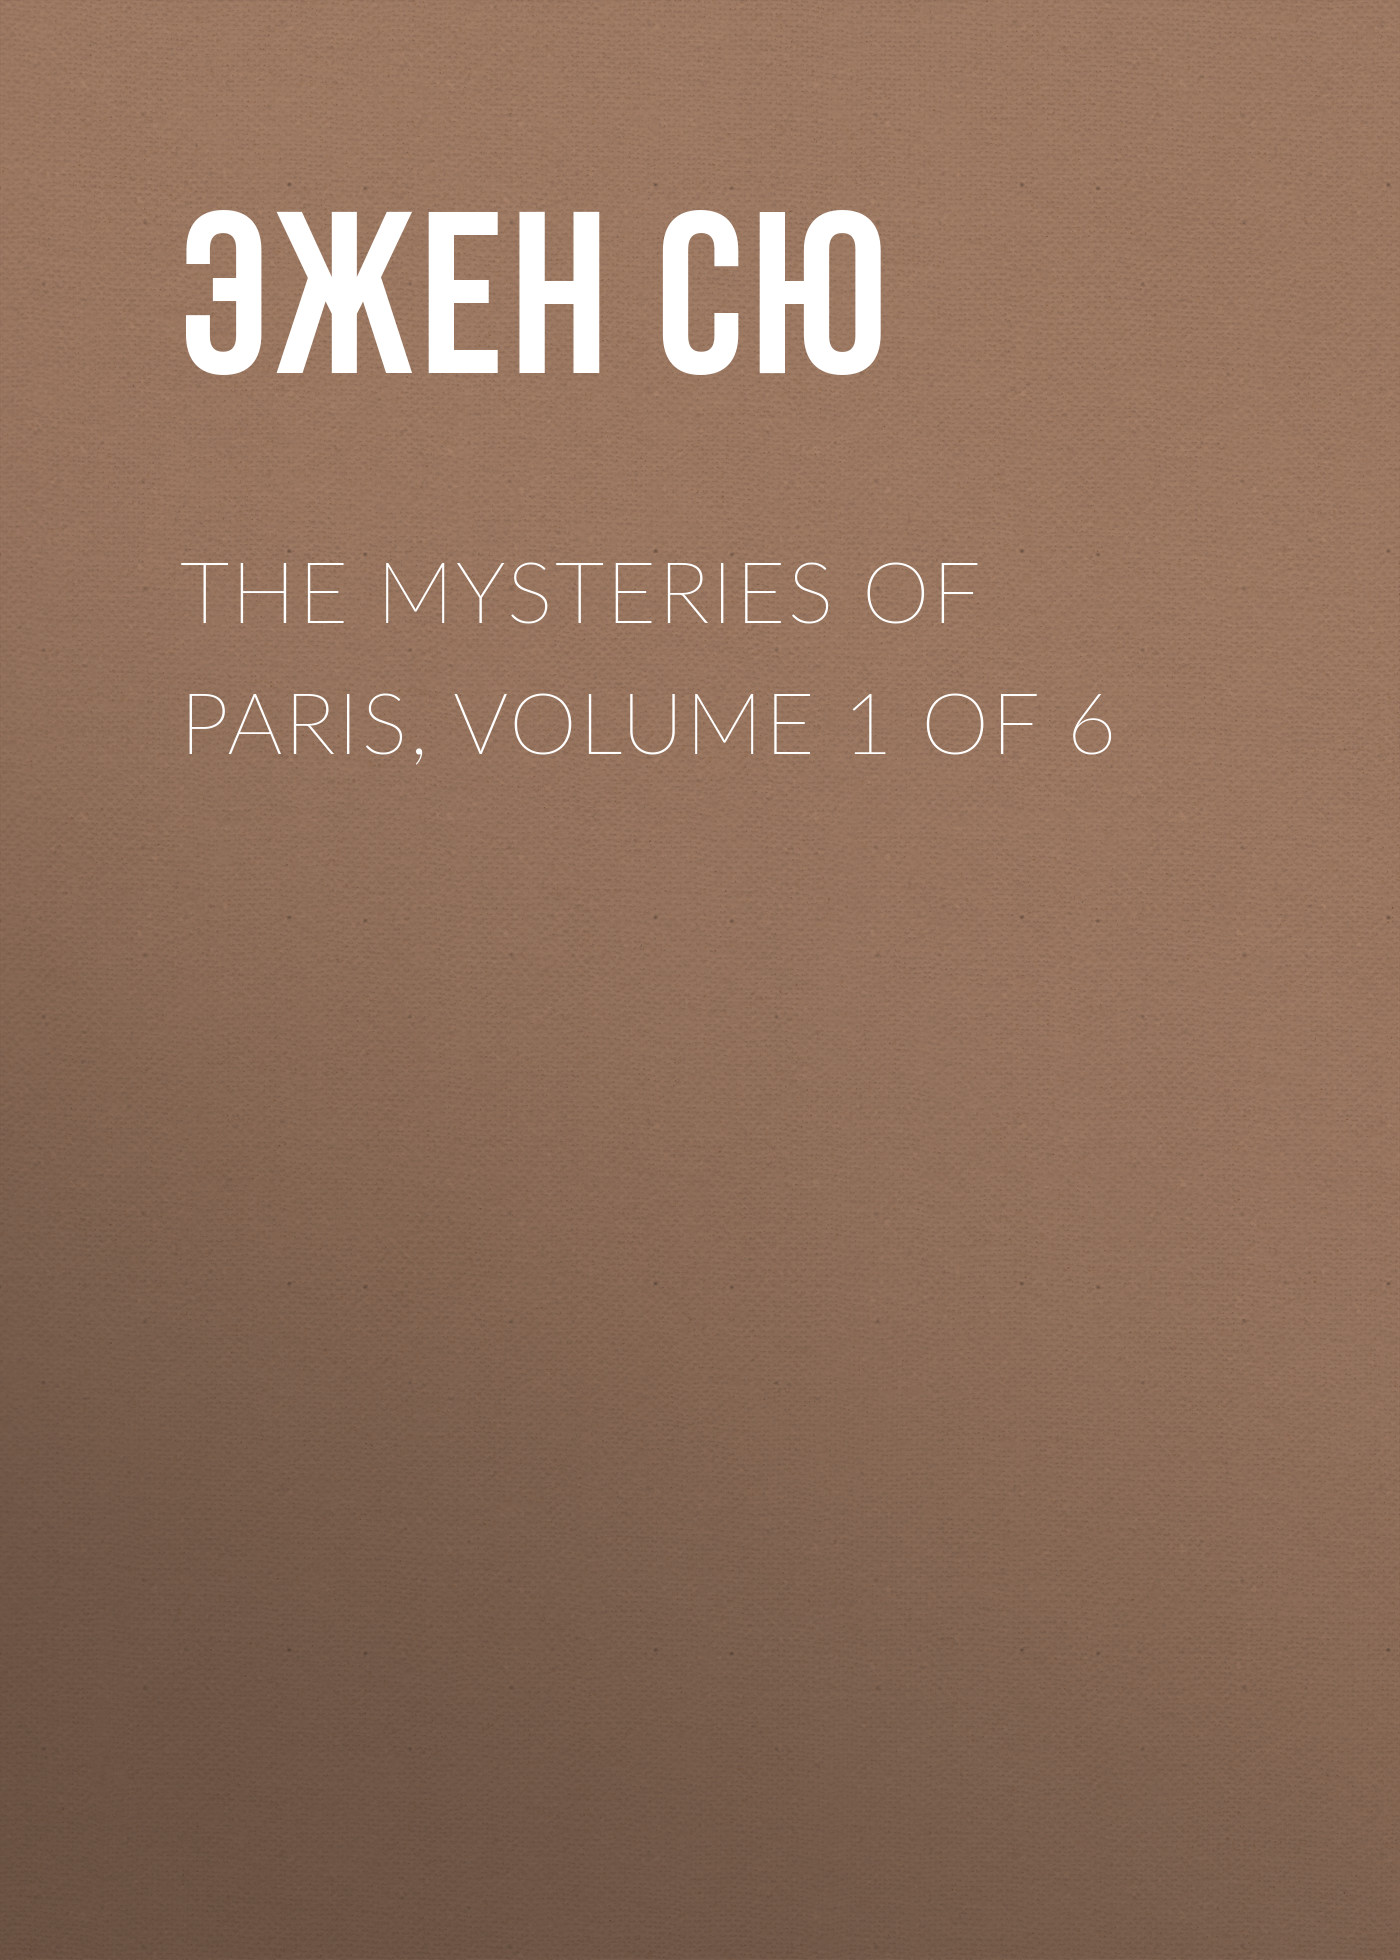 Эжен Сю The Mysteries of Paris, Volume 1 of 6 эжен сю the mysteries of paris volume 5 of 6